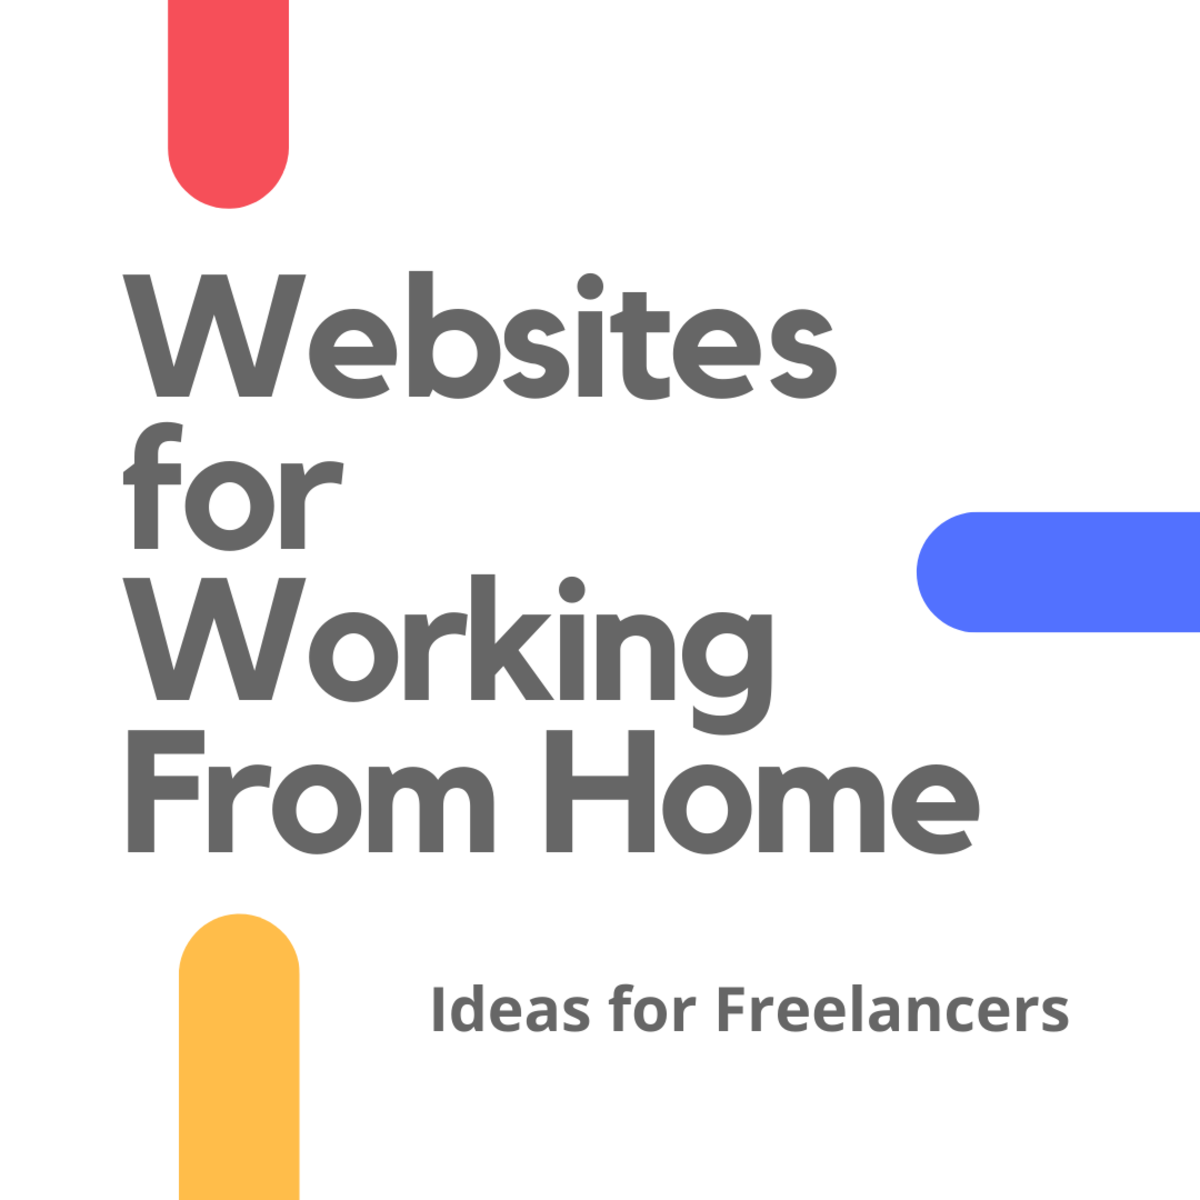 How to Make Money While Sitting at Home: Freelancing Ideas